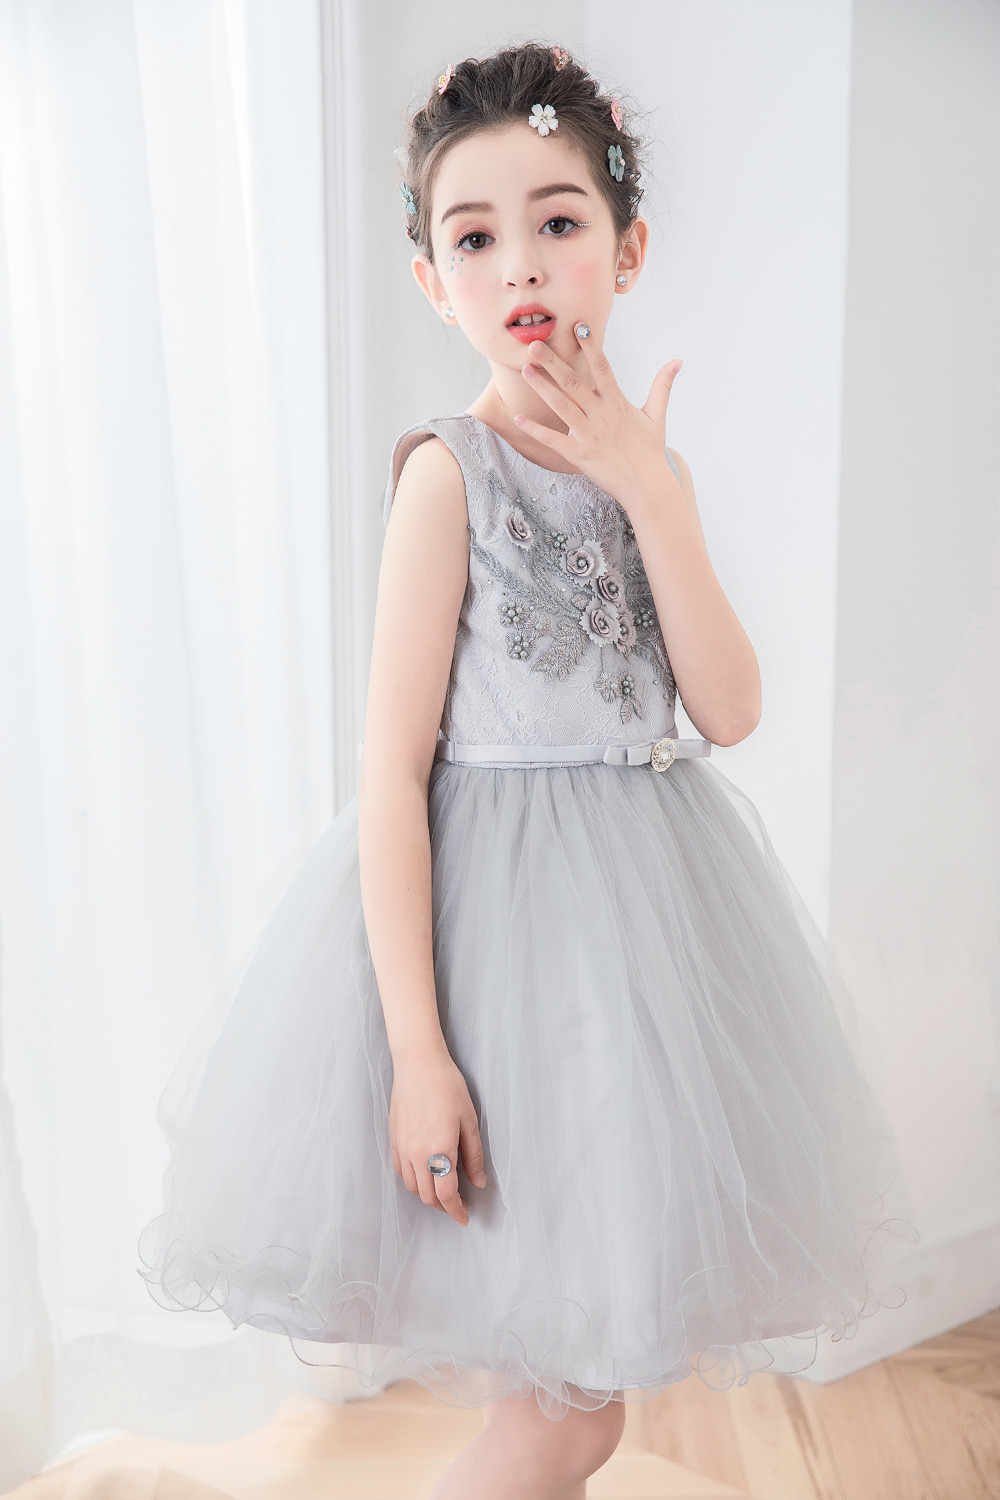 Gray Sleeveless Flower Girl Dress for Wedding Tulle Kids Holy Communion Dress A-Line Knee Length Kids Pageant Dresses for Girls summer cartoon castle sleeveless girls print dress knee length princess a line dress clothes for kids 6 to 12 years old kids